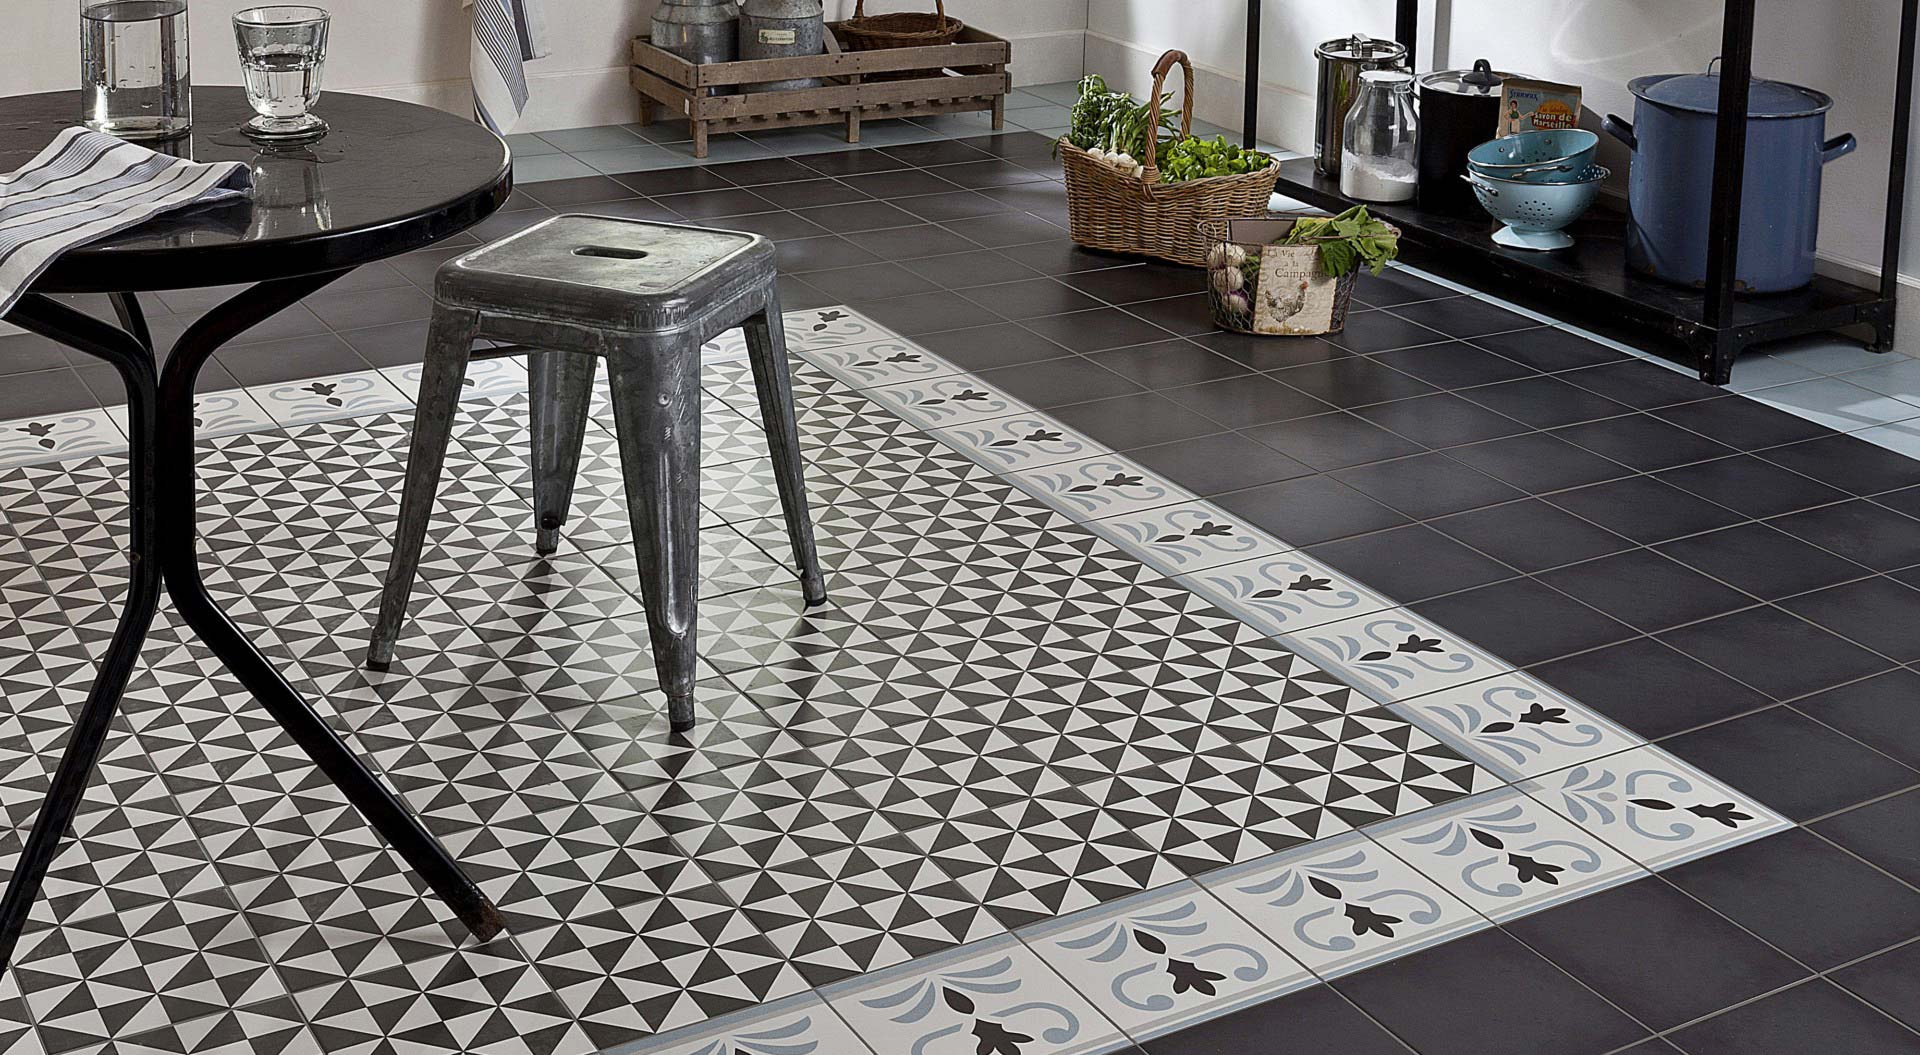 Tapis en carreaux ciment - Carreaux de ciment paris ...